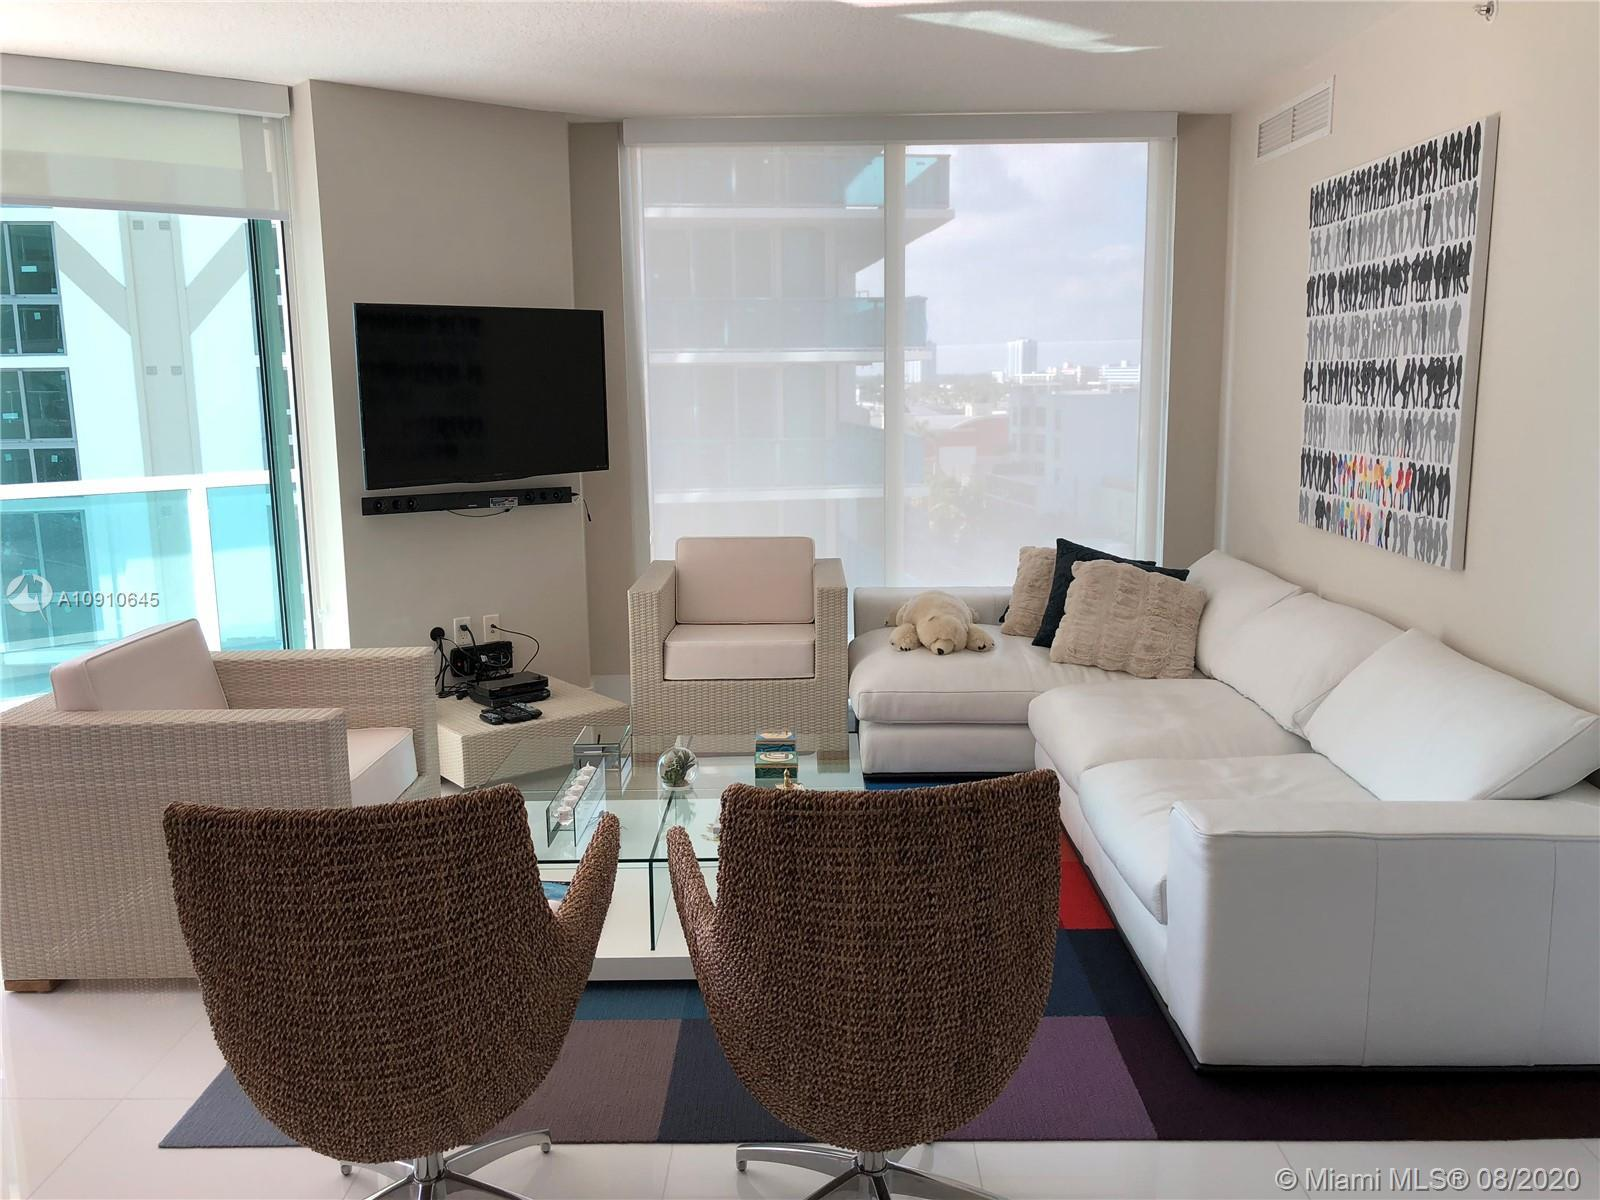 Great 3 Bed/2 Bath unit at St Tropez III offering floor-to-ceiling, high-impact glass windows, slidi